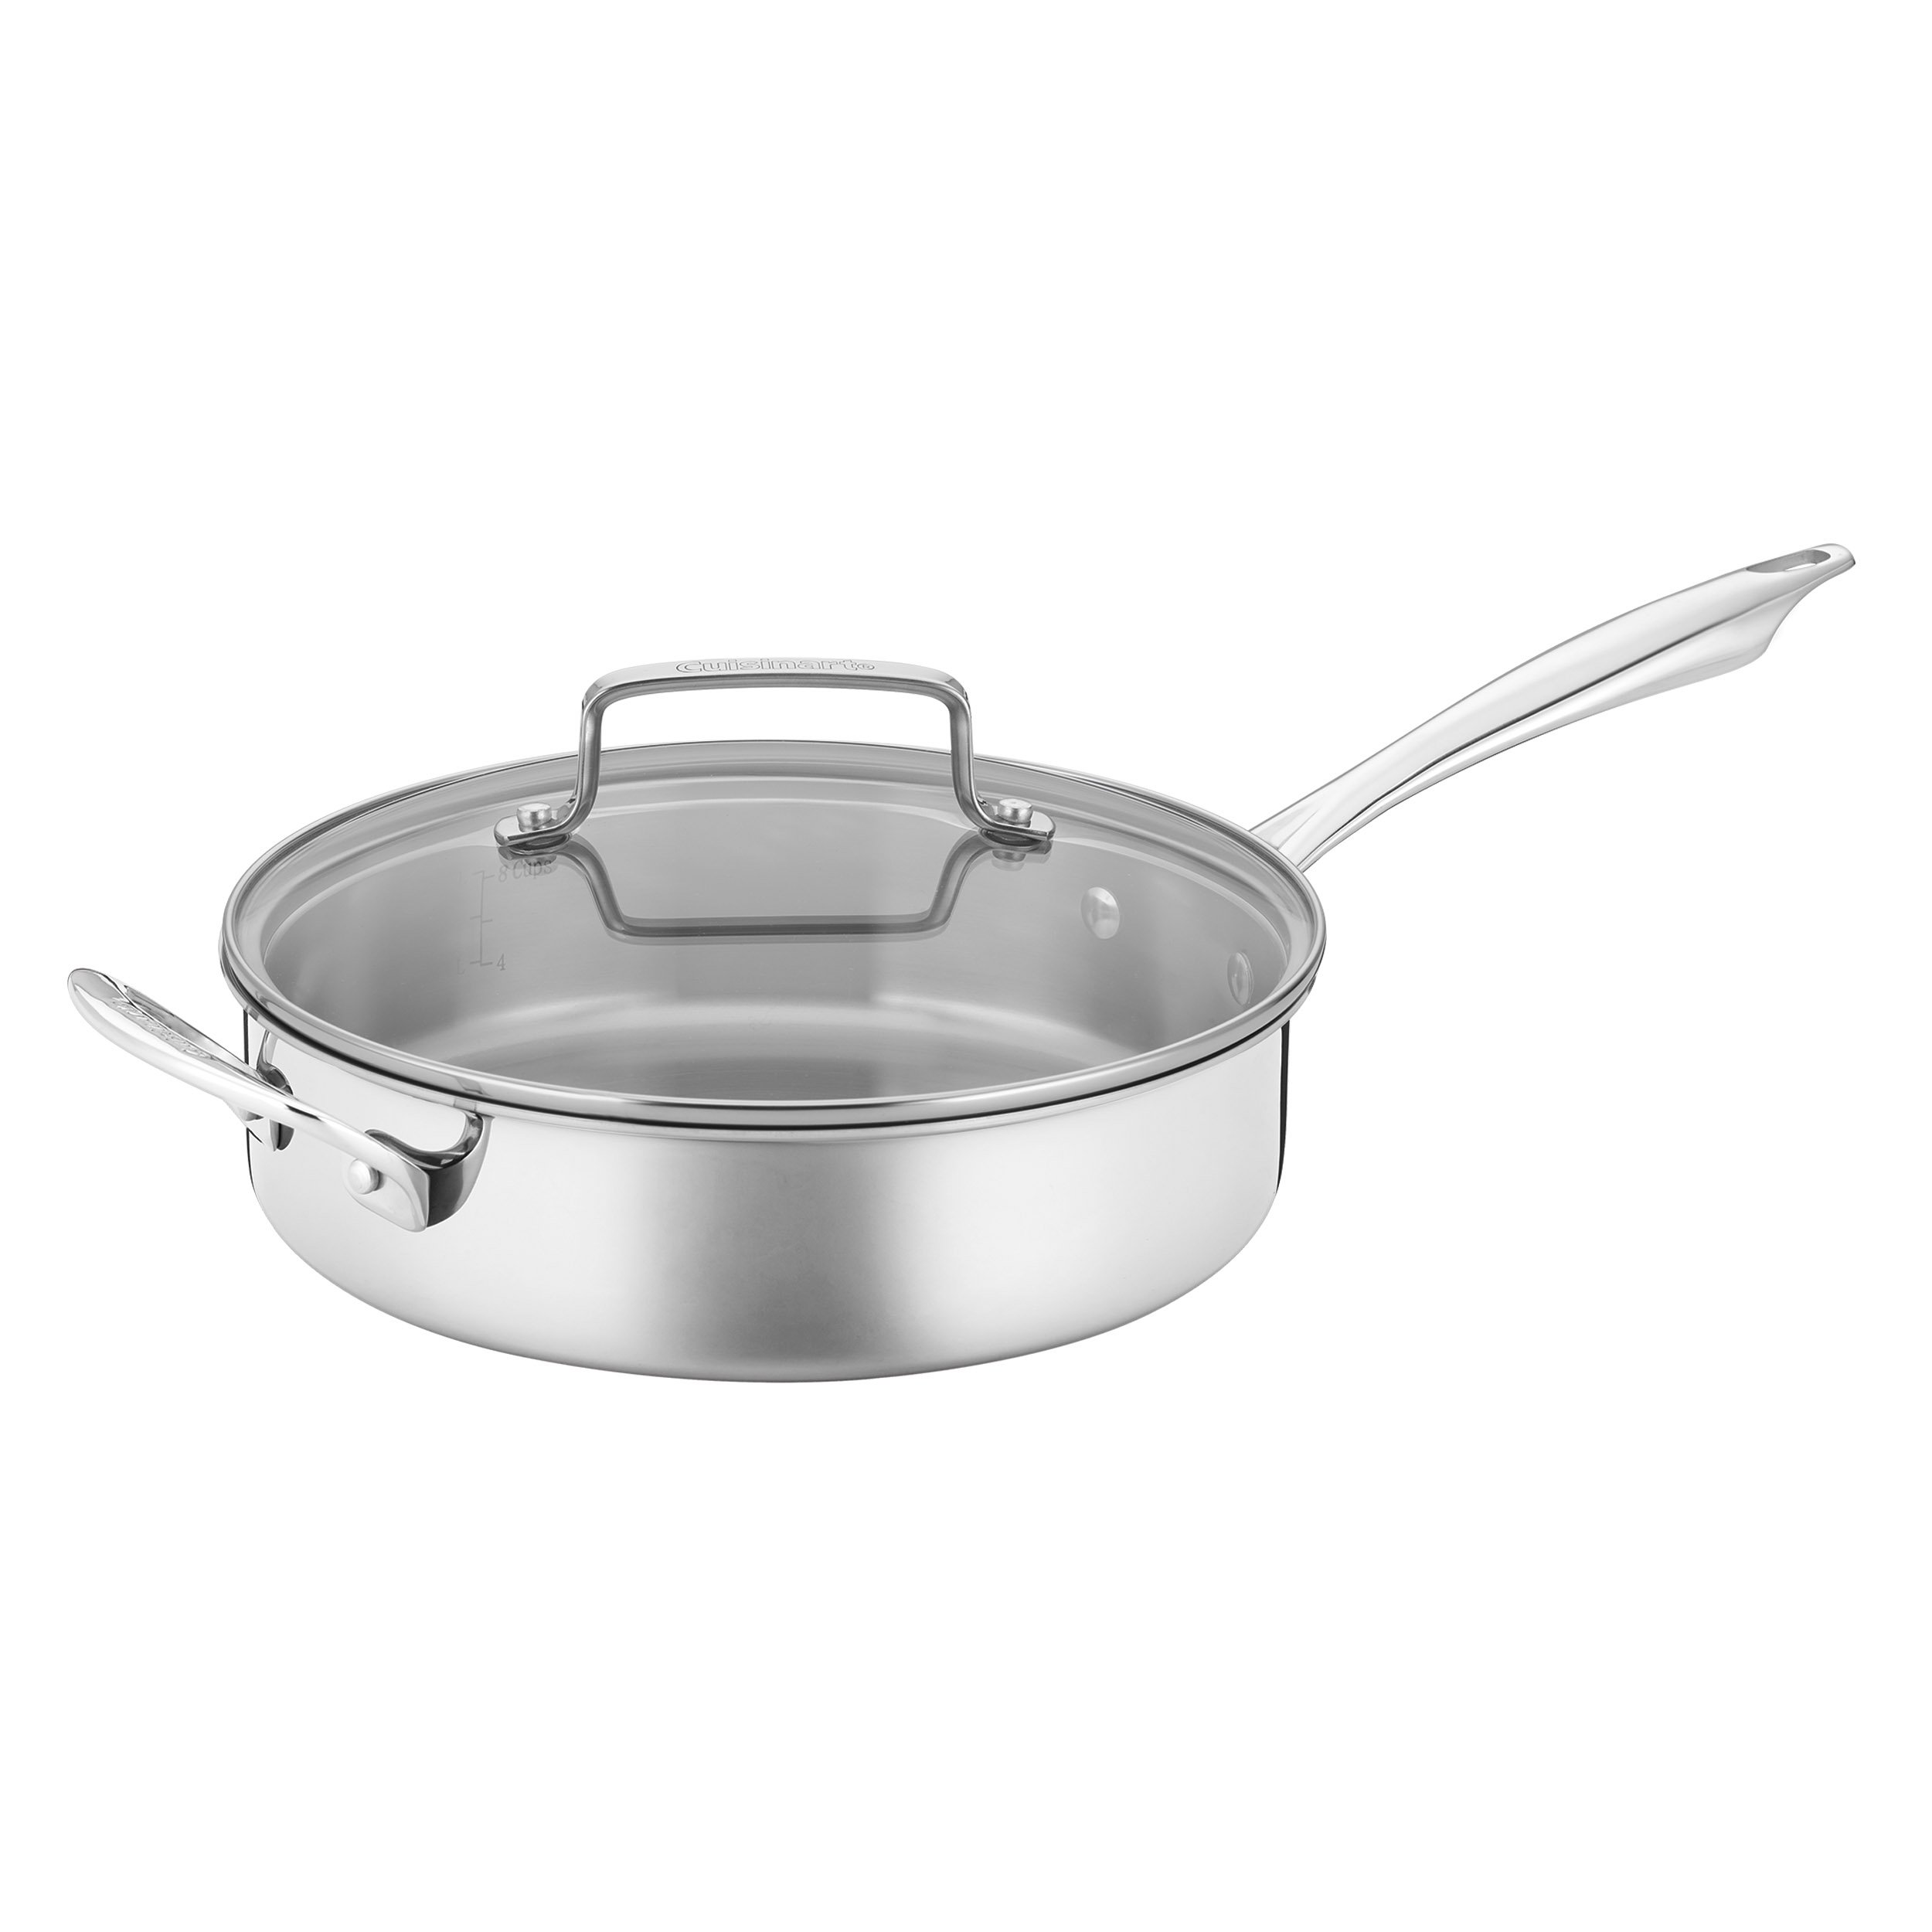 Cuisinart TPS-10 10 Piece Tri-ply Stainless Steel Cookware Set, PC, Silver by Cuisinart (Image #5)